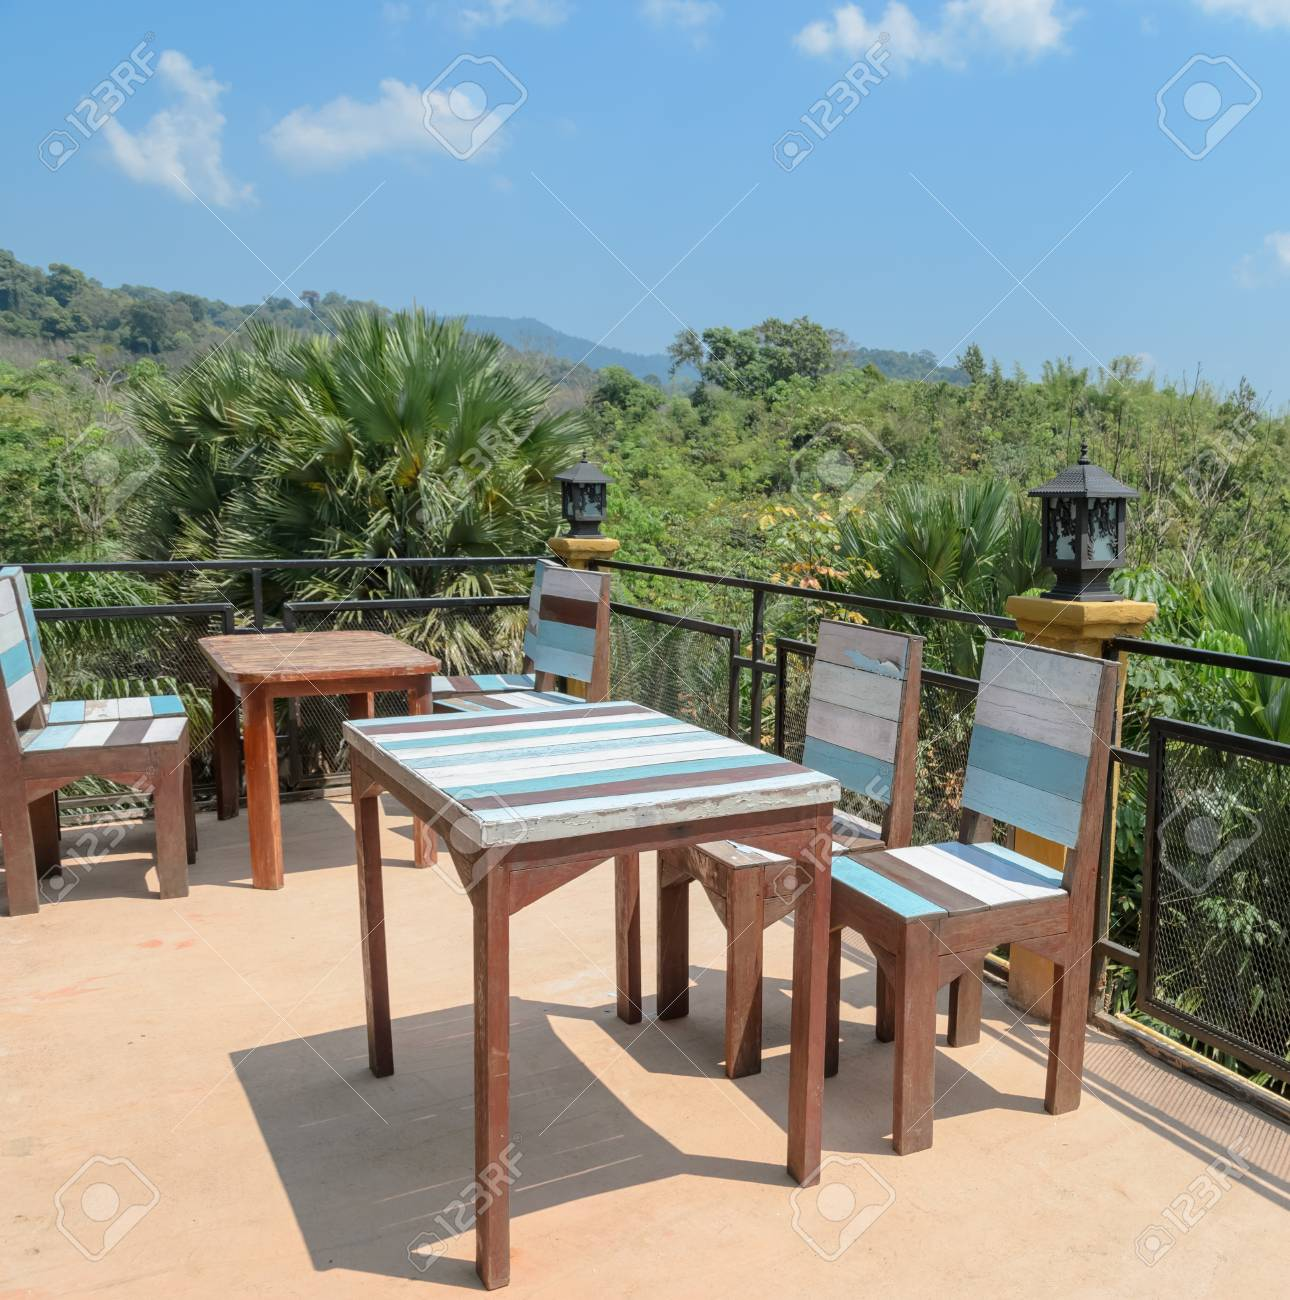 Superieur Outdoor Deck And Patio Furniture With Mountain View. Southern Thailand  Stock Photo   43295969